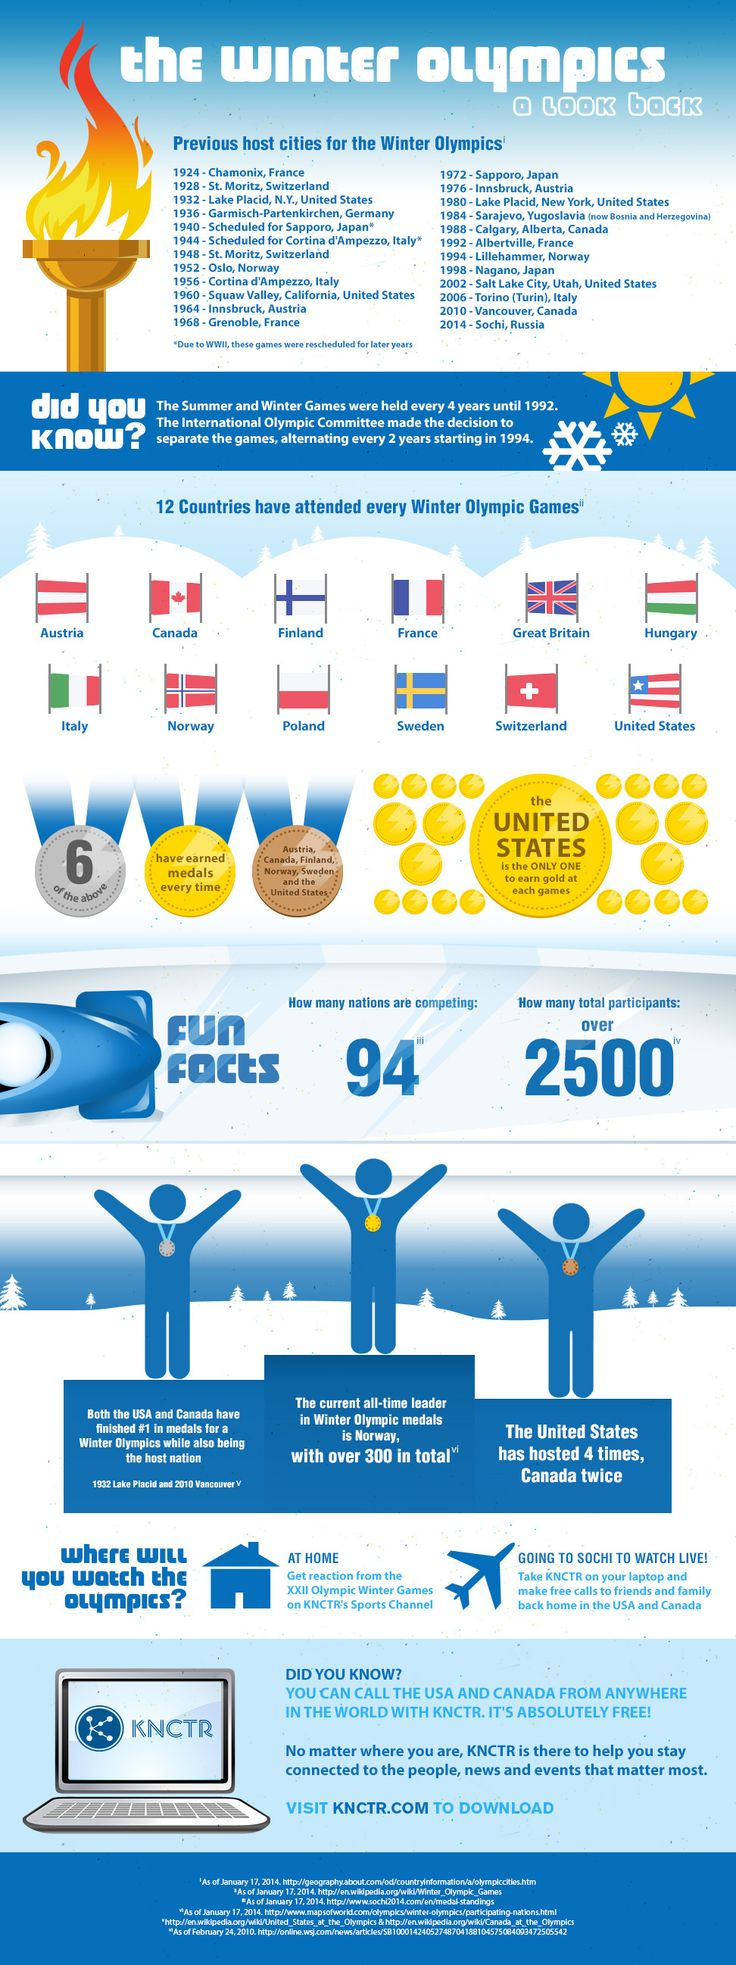 Winter Olympic games- a look back